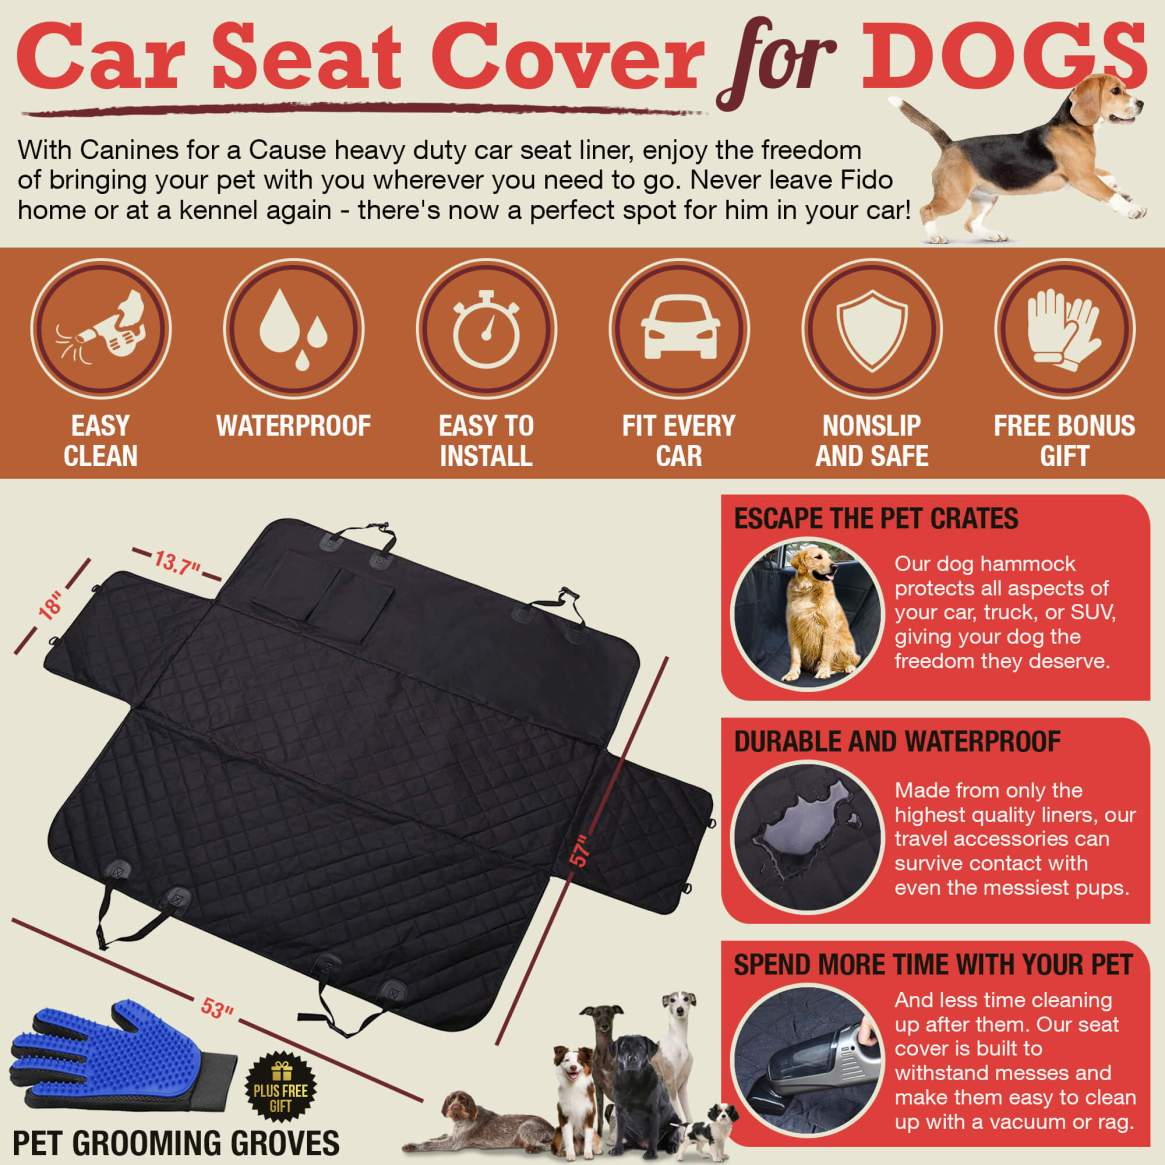 Canines with a Cause Car Seat Cover for Dogs